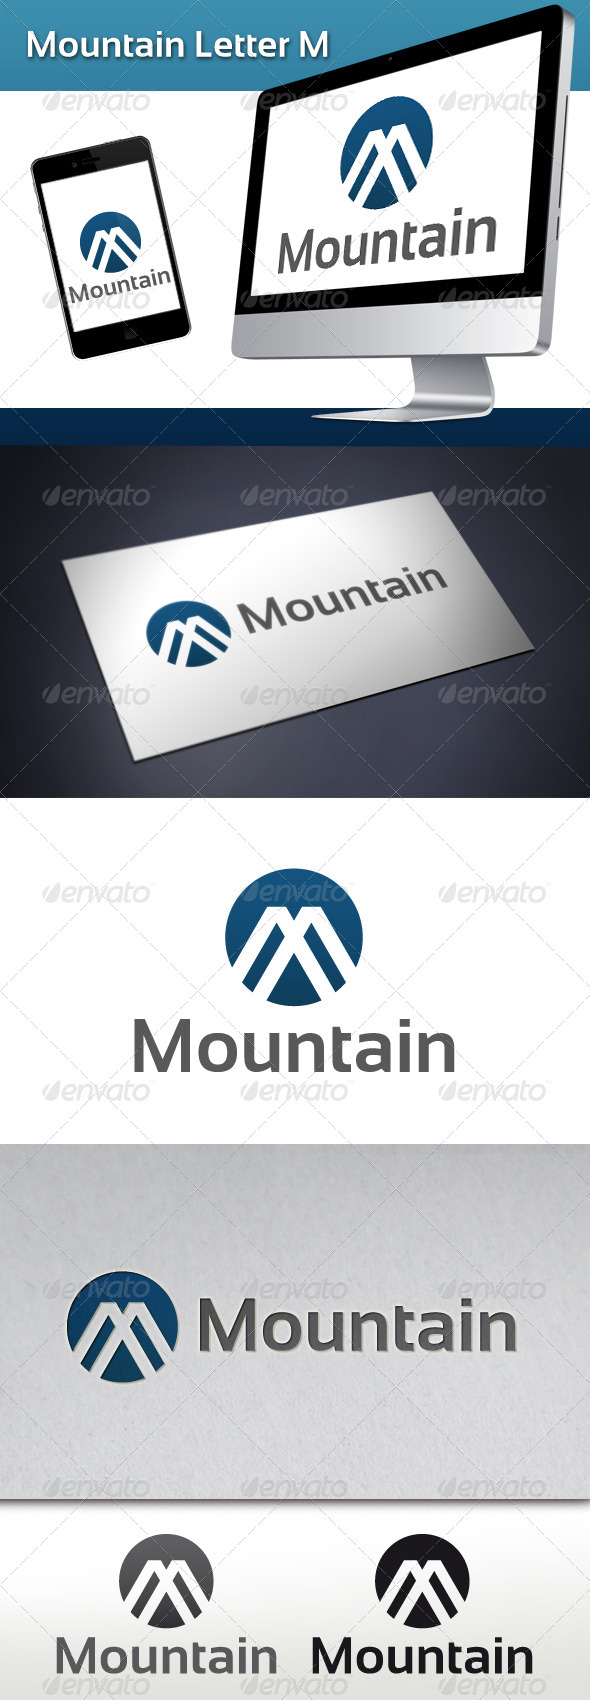 Mountain Letter M Logo - Abstract Logo Templates